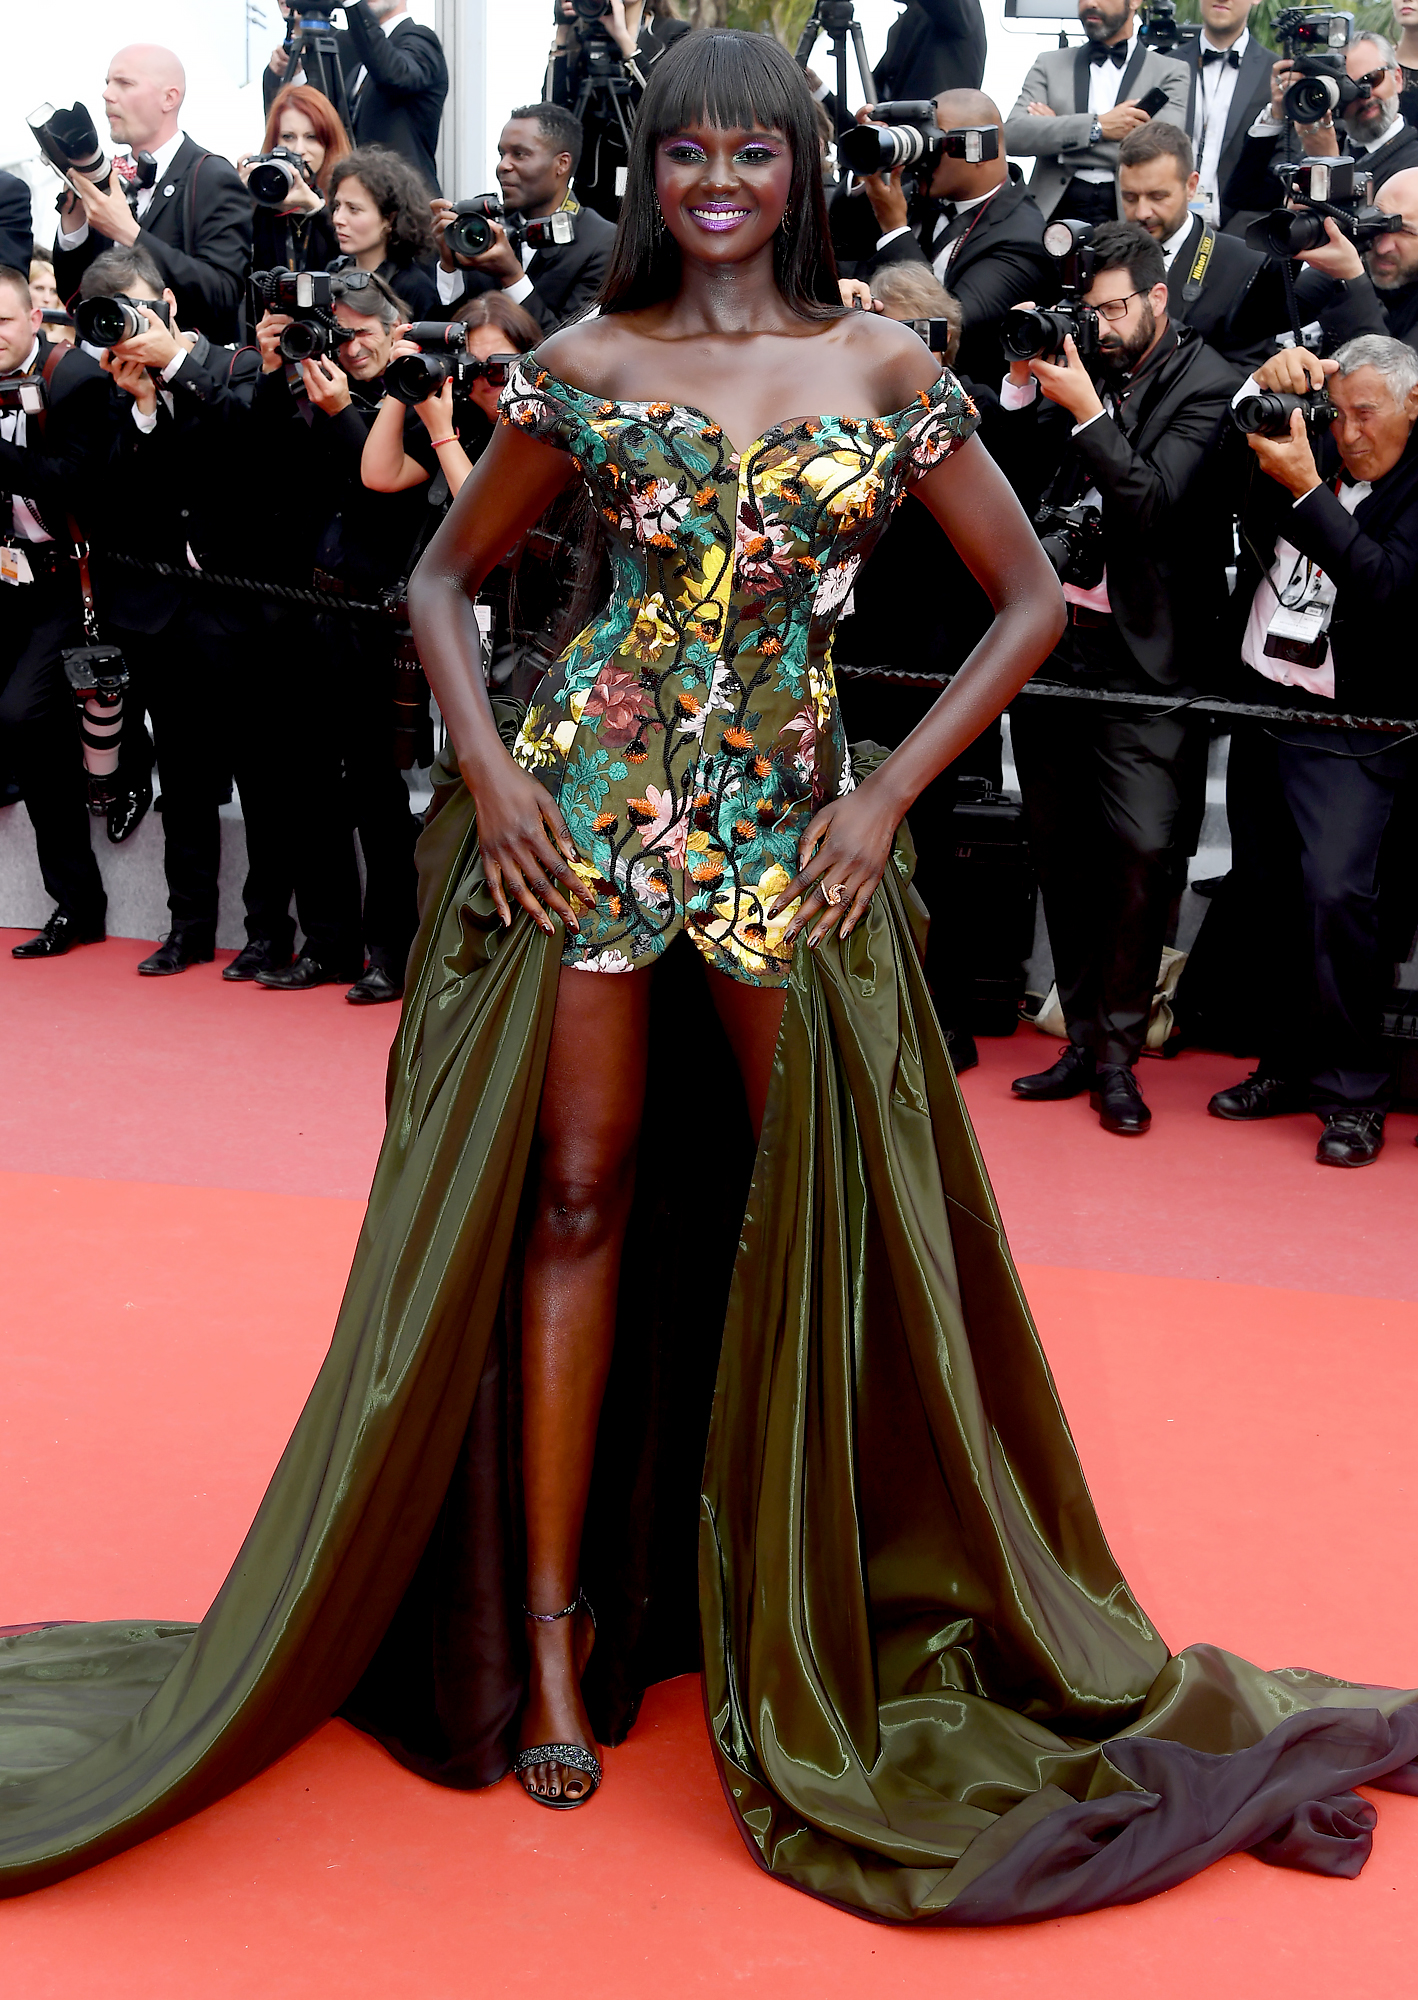 Duckie-Thot - At the Once Upon a Time in Hollywood screening on Tuesday, May 21, the model flashed her games in an embroidered Vivienne Westwood minidress with a dramatic train.